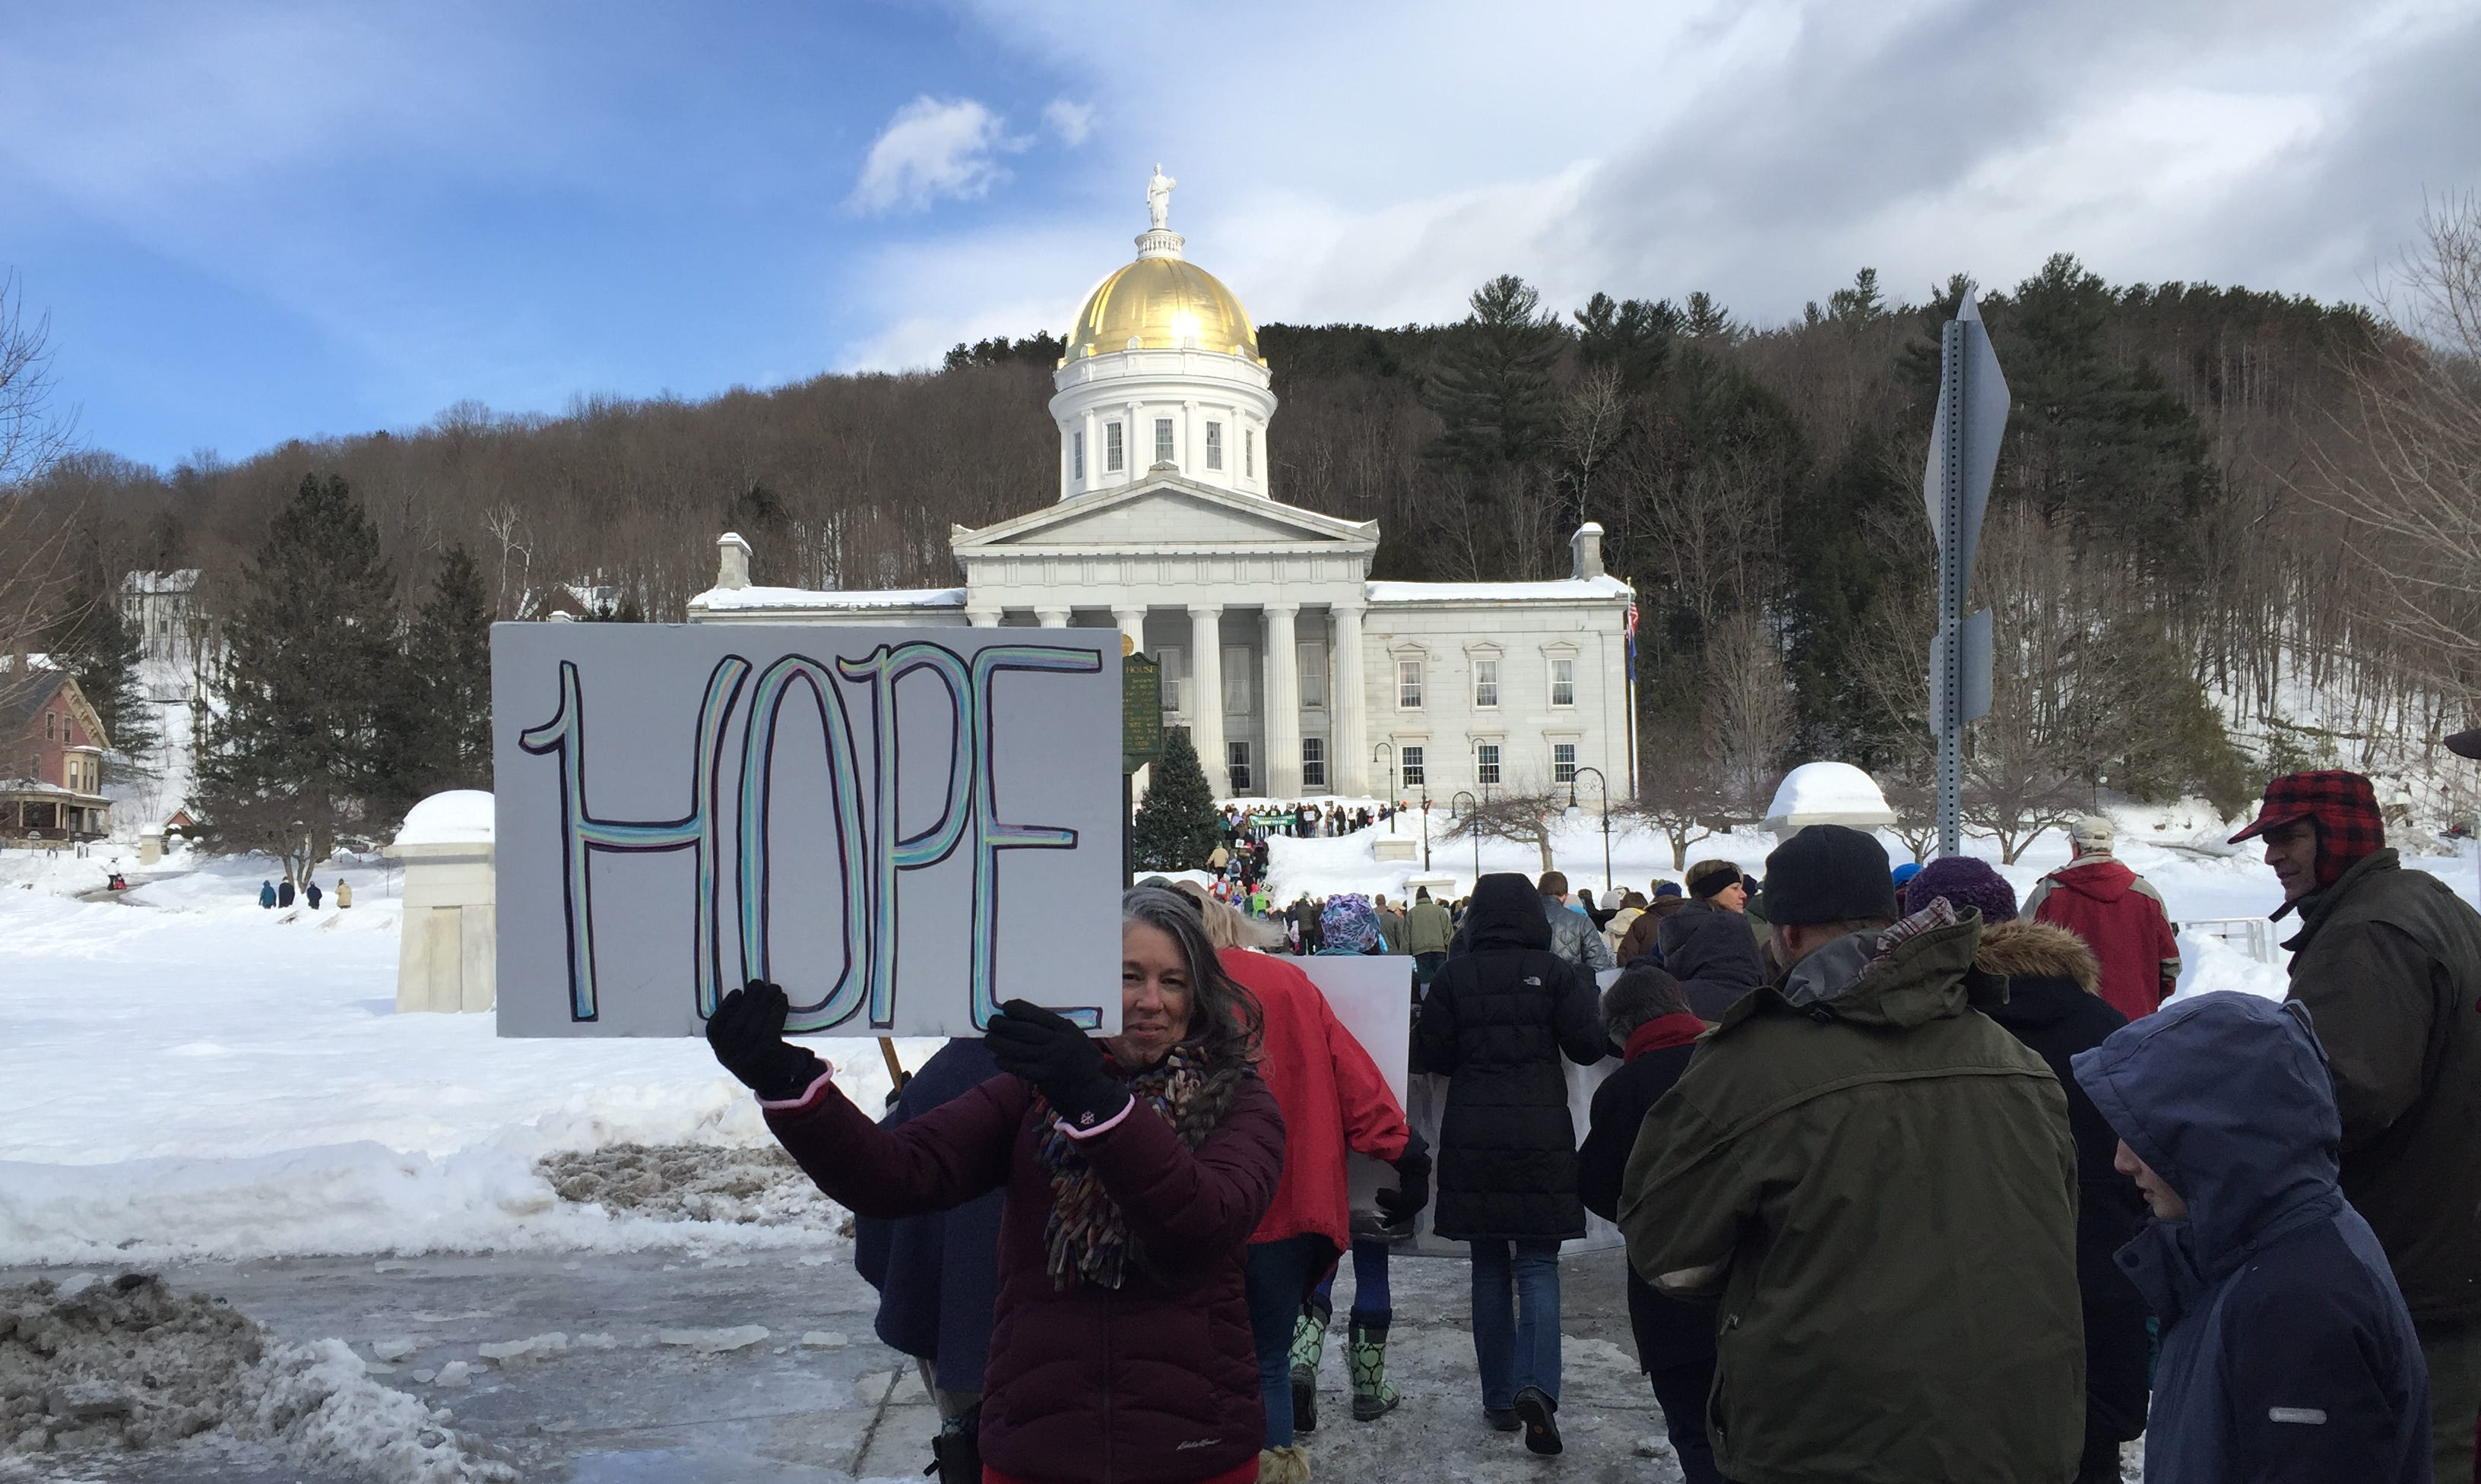 Delia Warnecke of Poultney holds a homemade sign at an anti-abortion rally in Montpelier on Jan. 26, 2019 as hundreds gather.